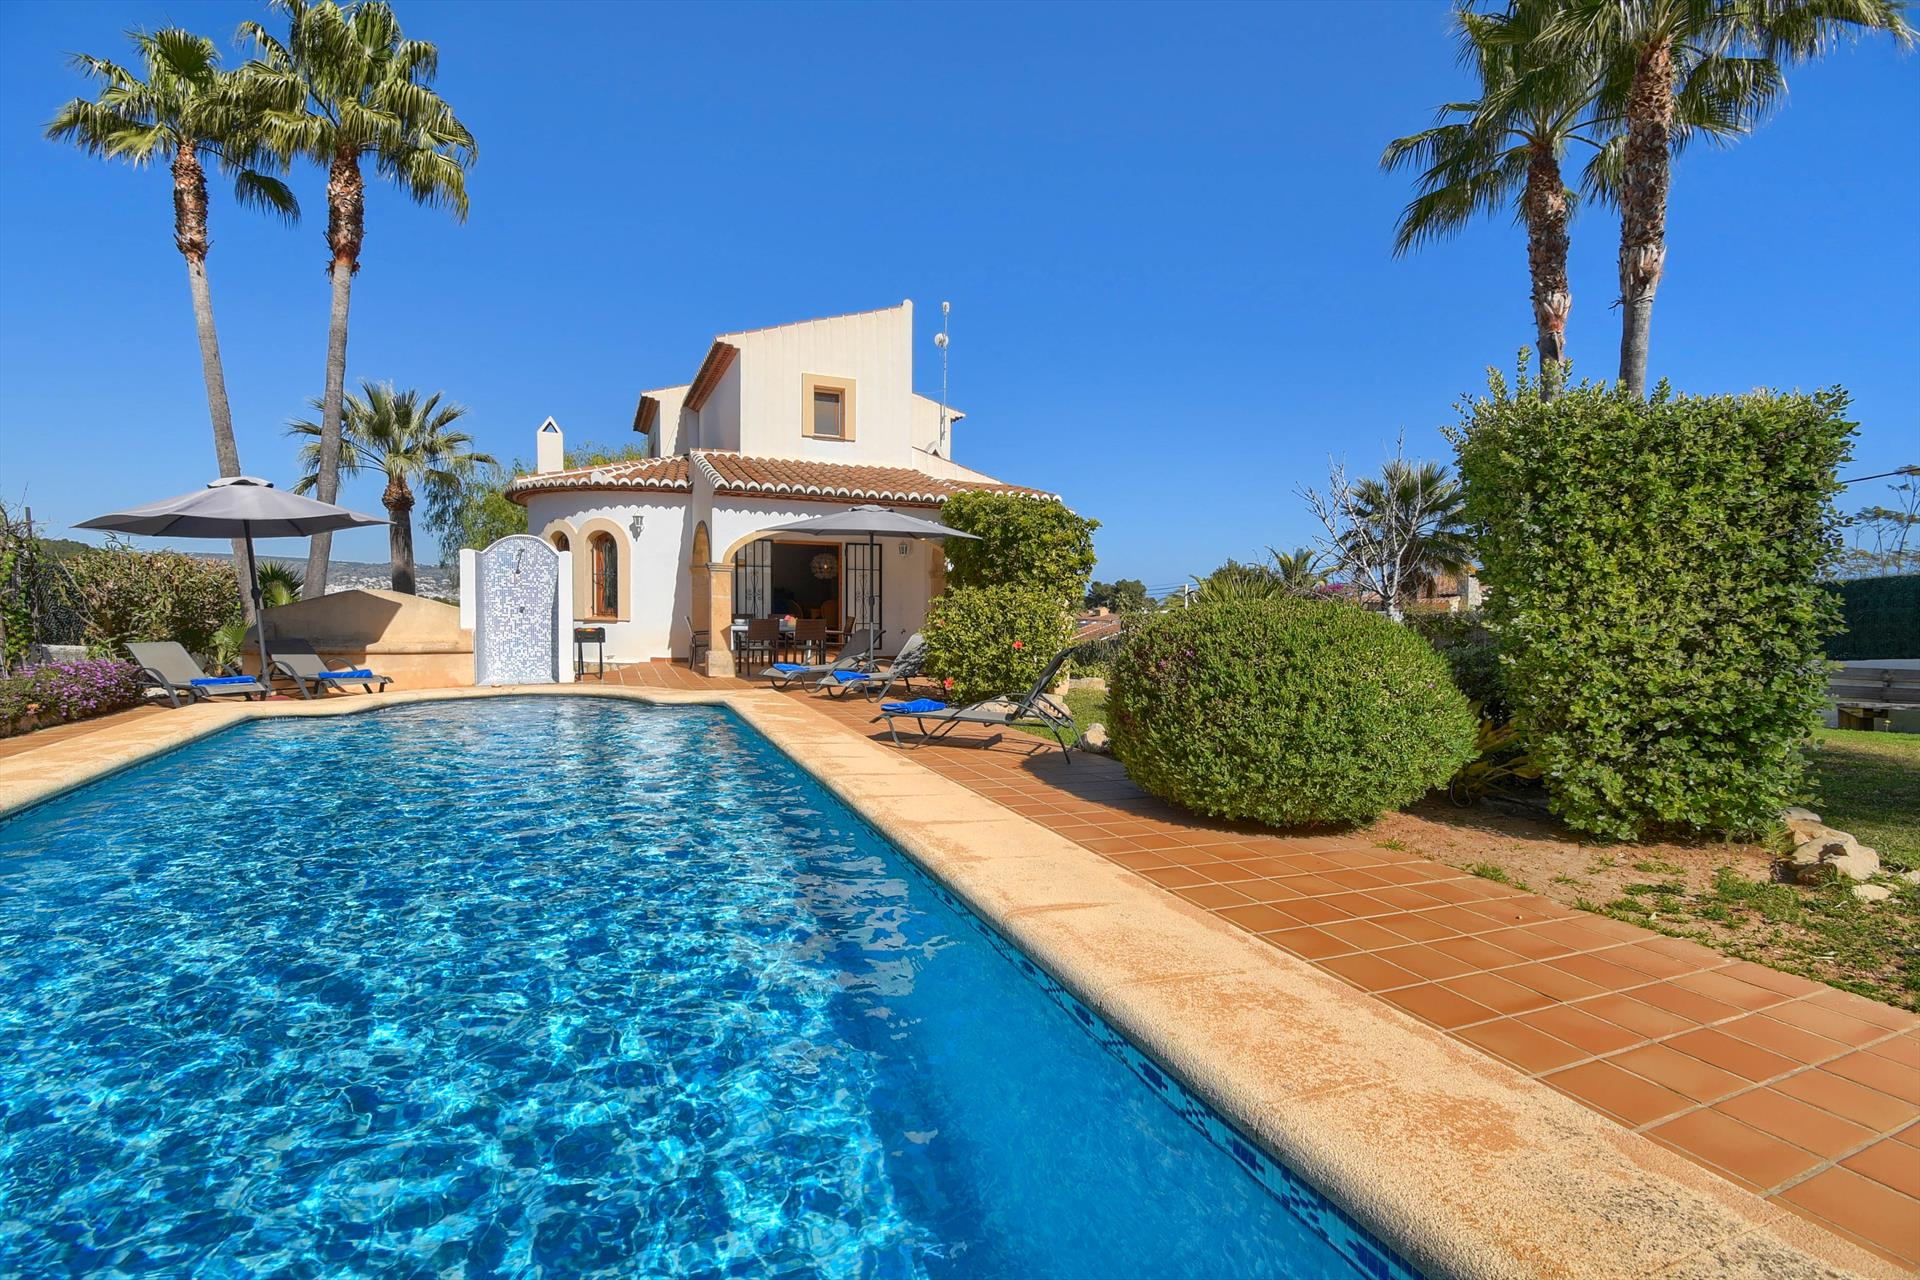 El Signo de Aries, Classic and comfortable villa in Javea, on the Costa Blanca, Spain  with private pool for 6 persons...